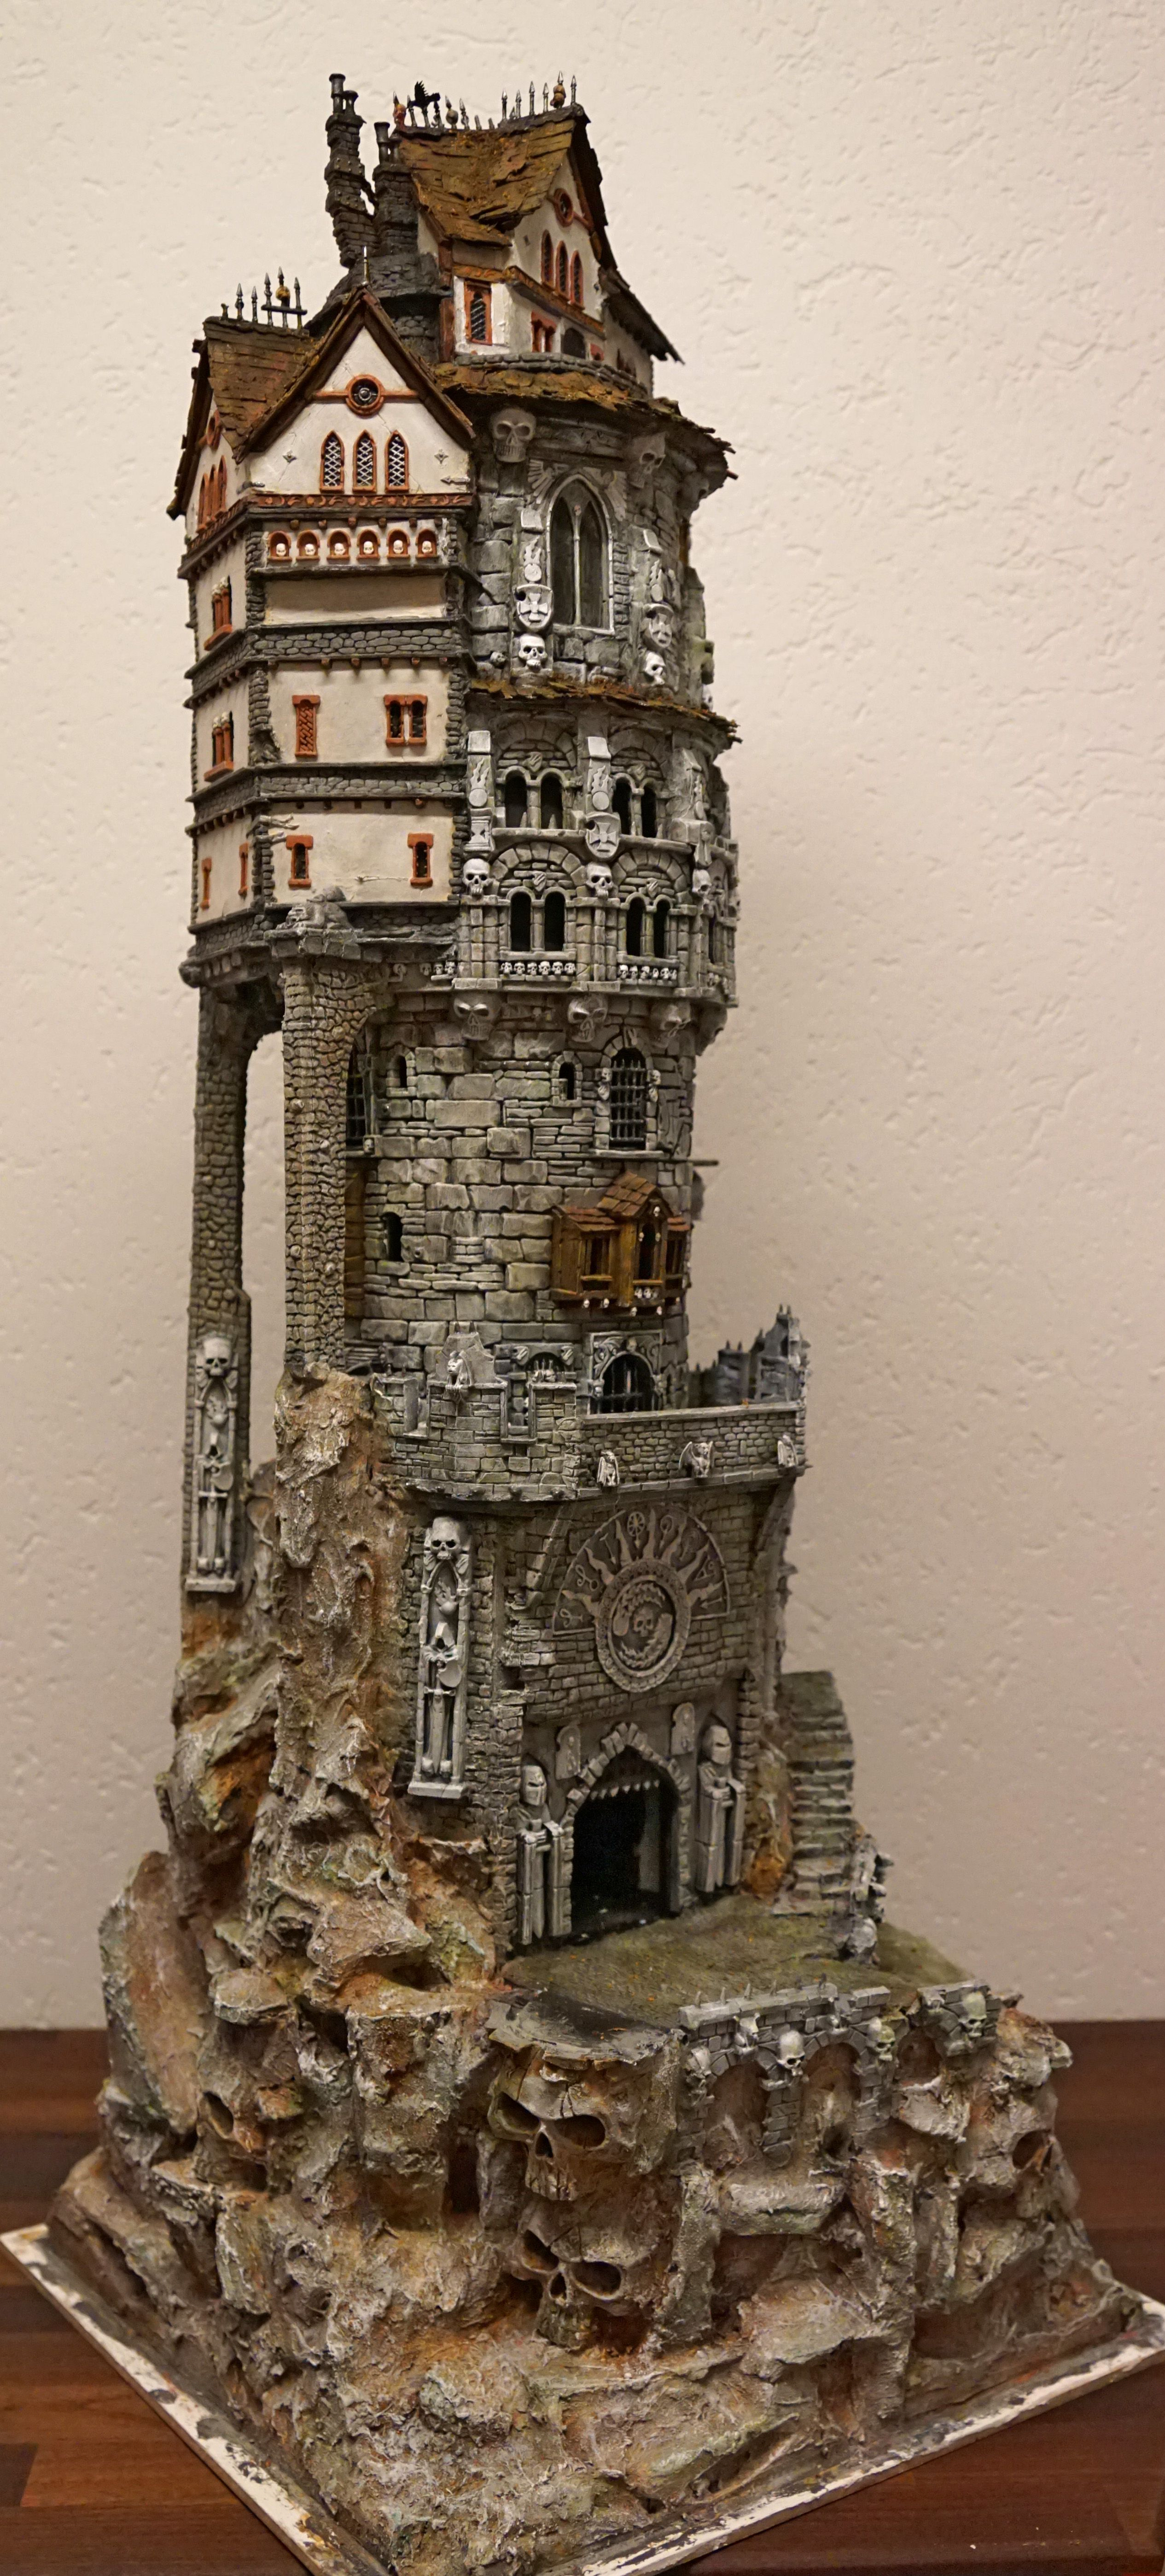 Cool Tower 2 Buildings Fantasy House Miniature Houses